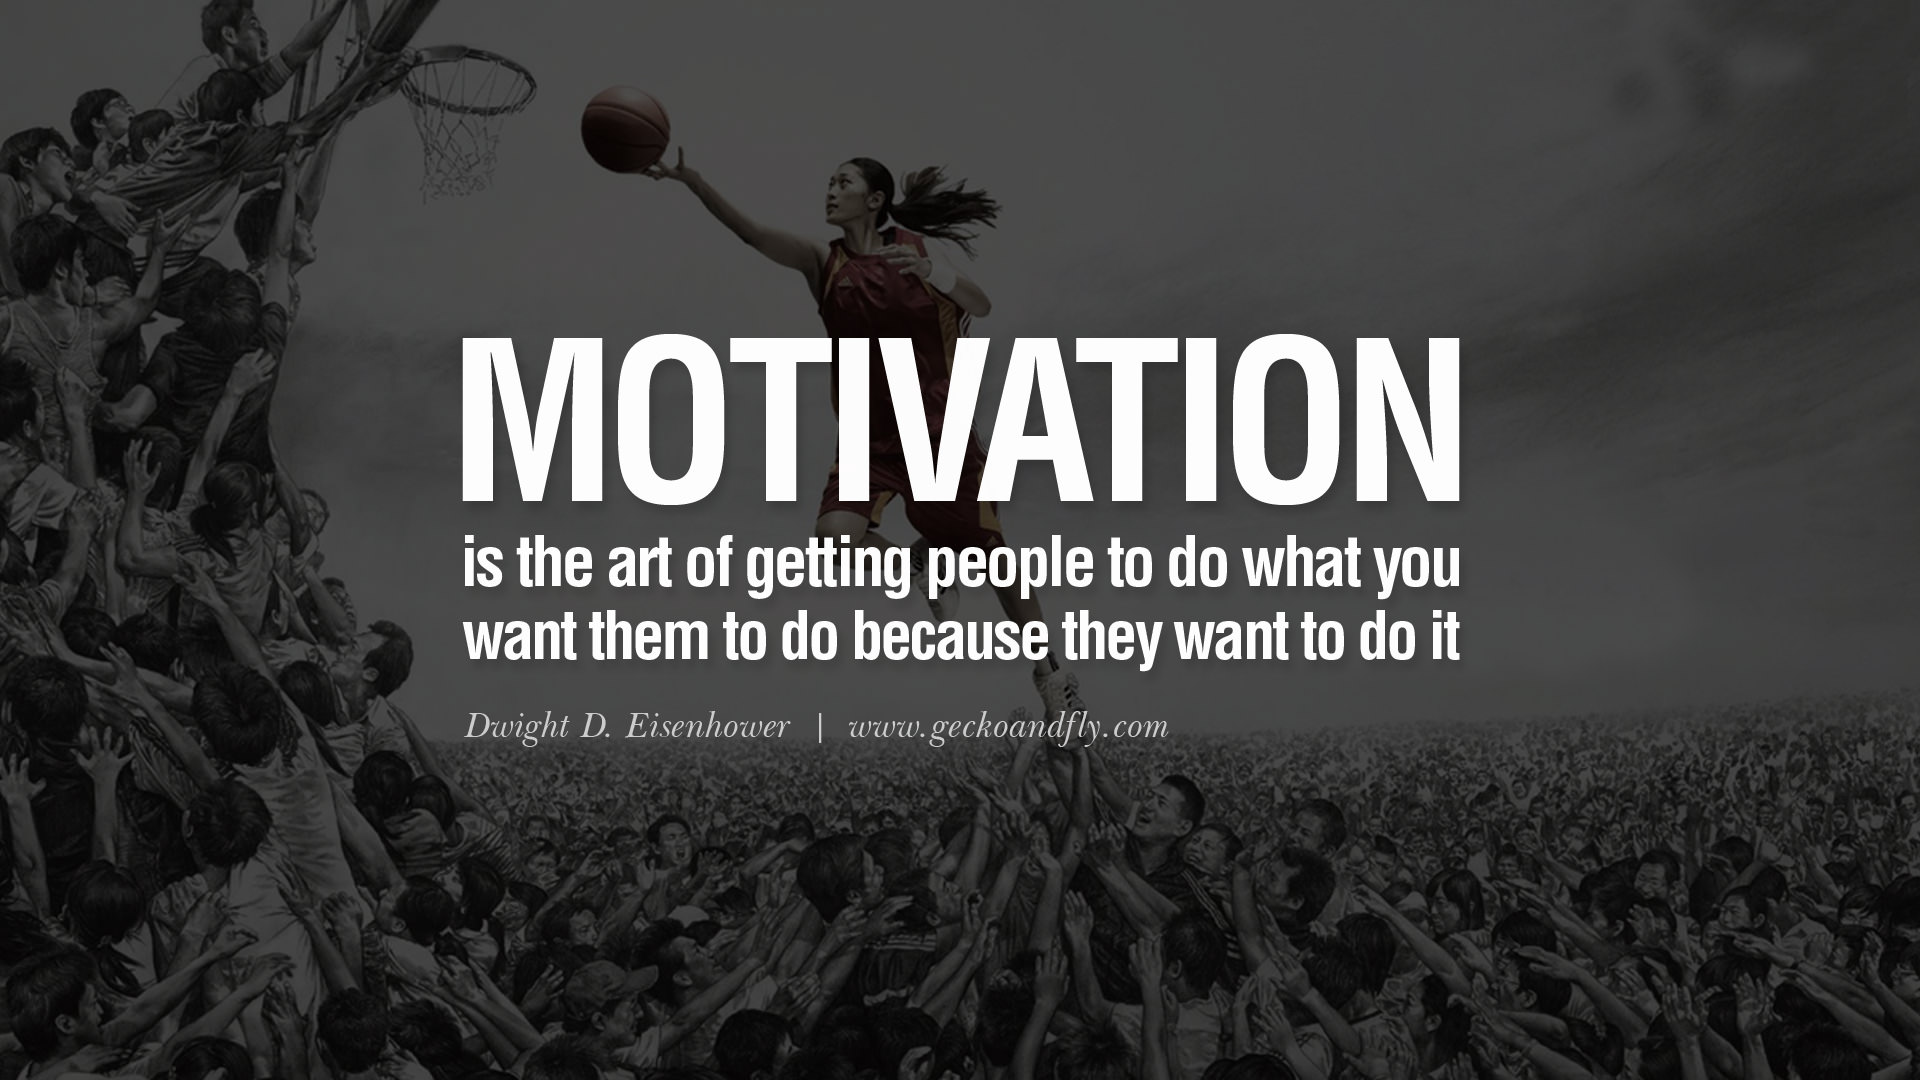 Best Motivational Quotes For Students: For Students Motivational Quotes By Famous People. QuotesGram